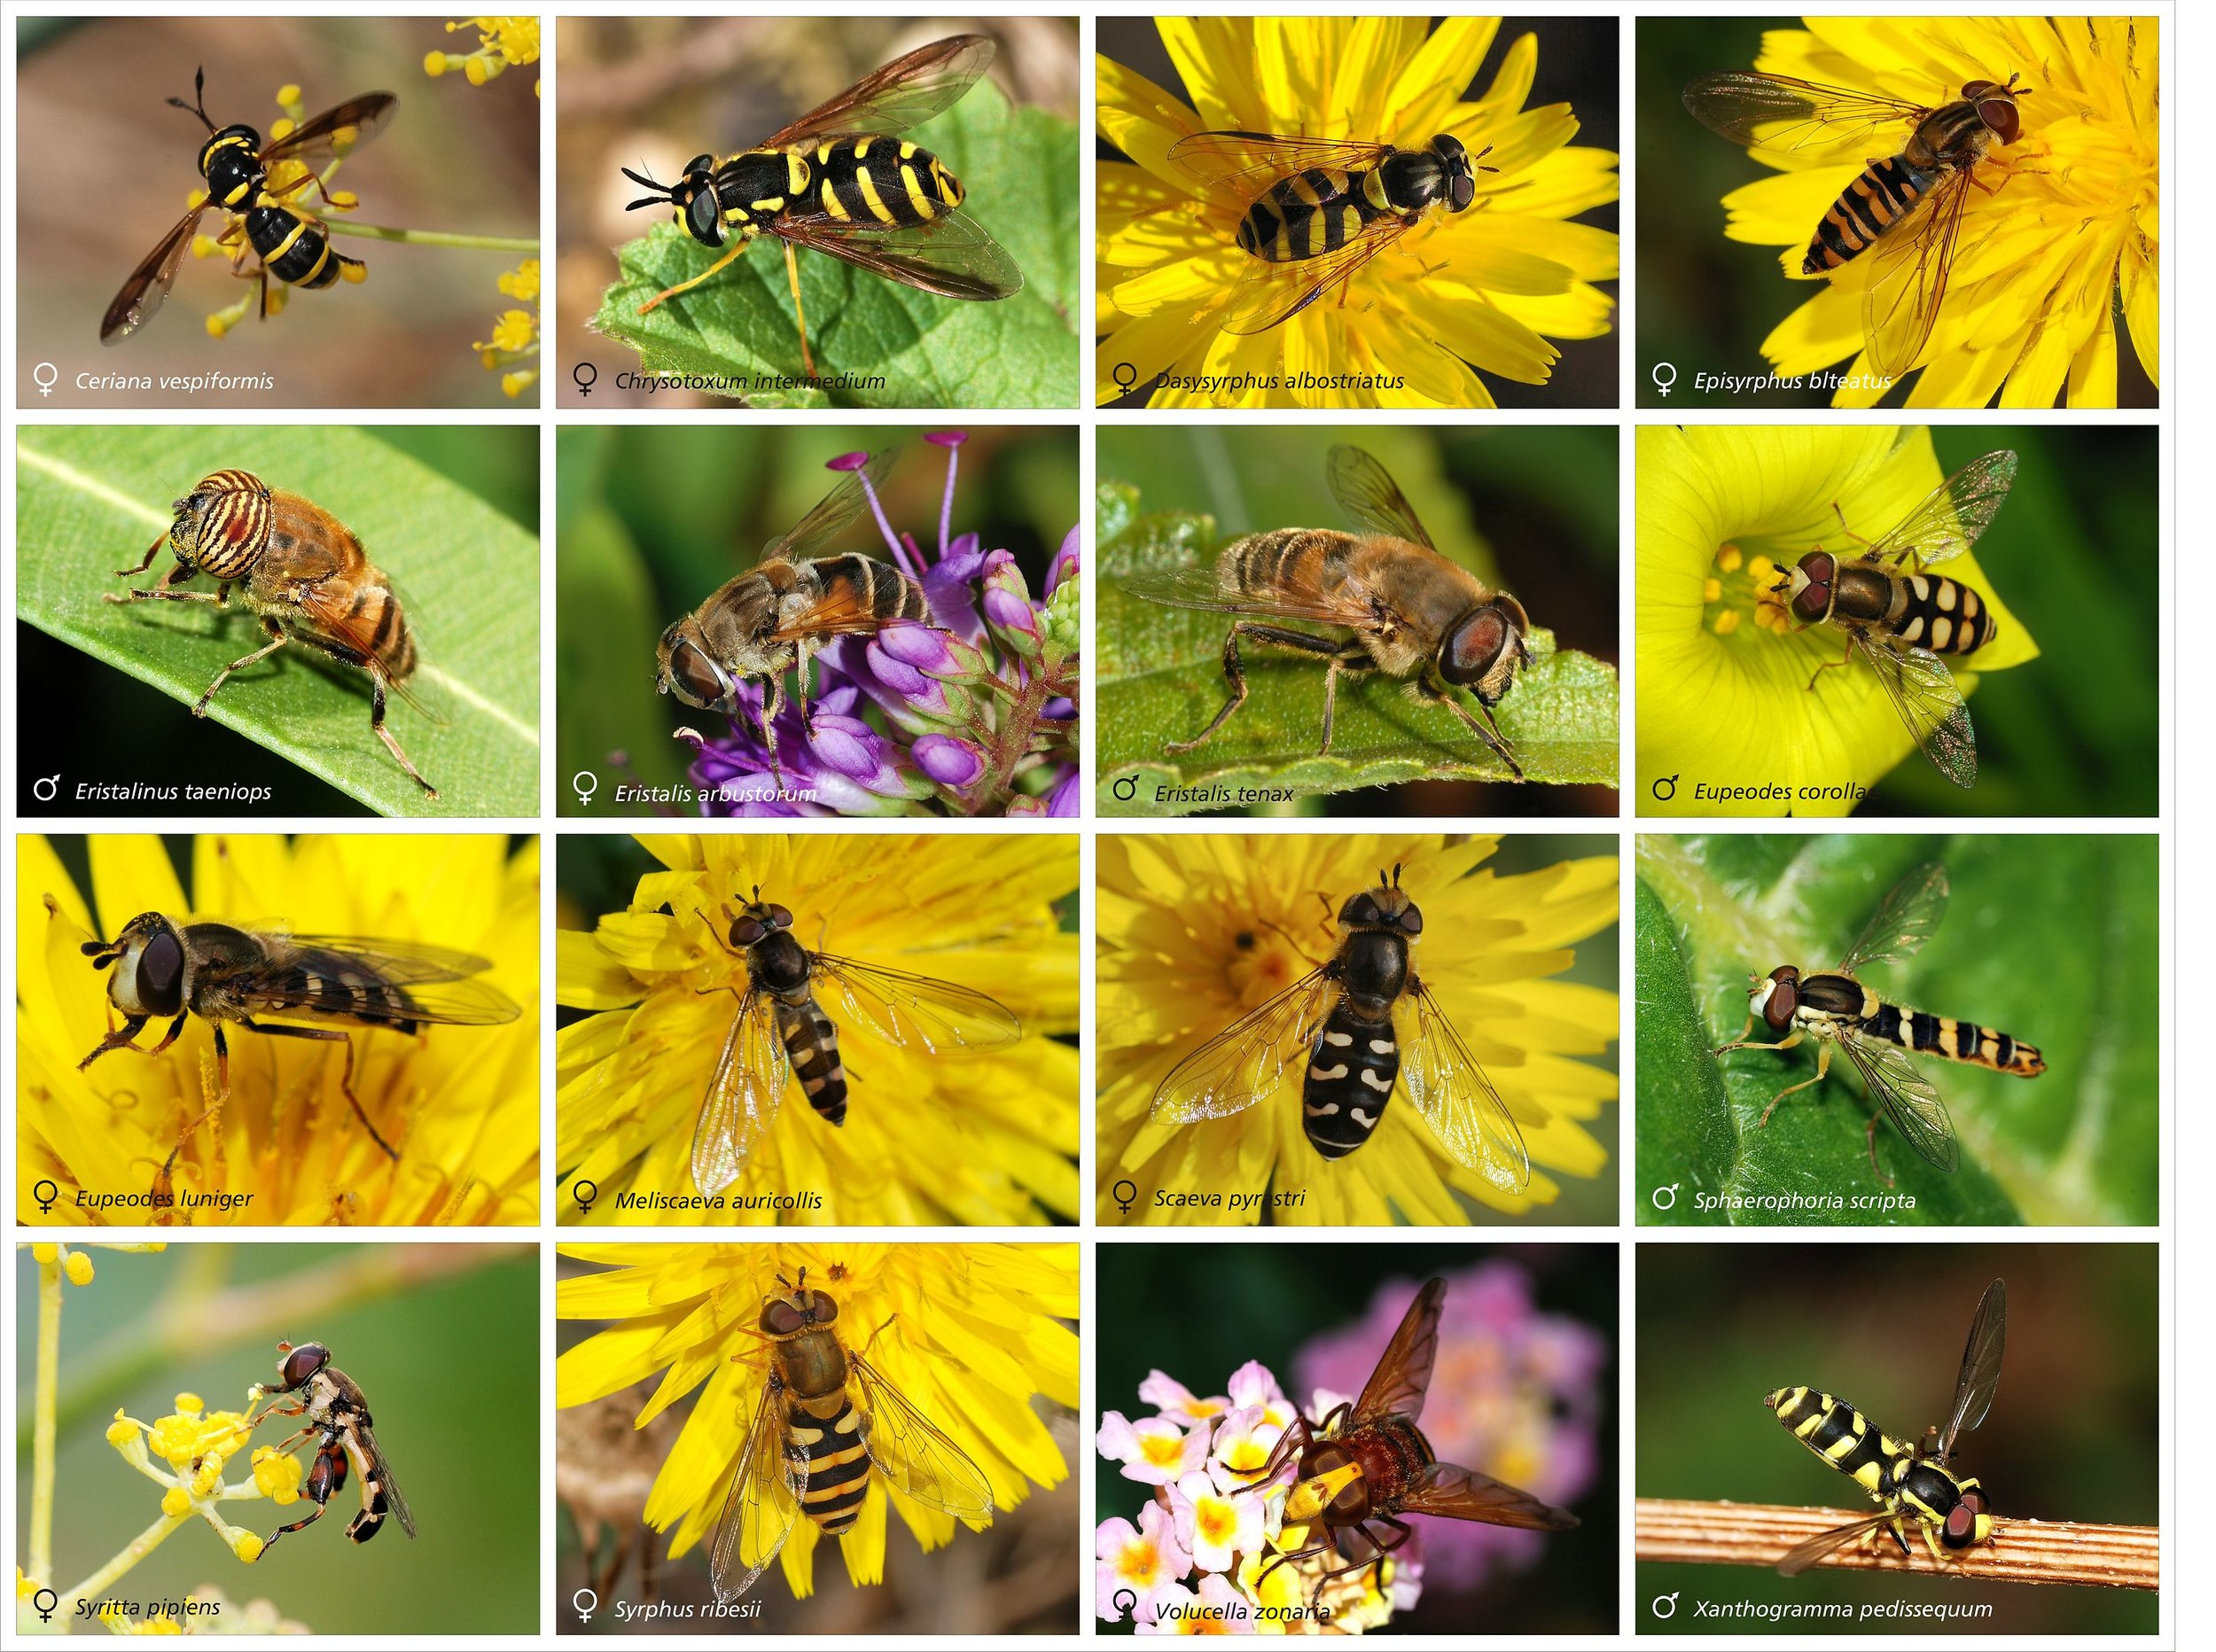 Syrphid flies. Photos and layout by Joaquim Alves Gaspar.